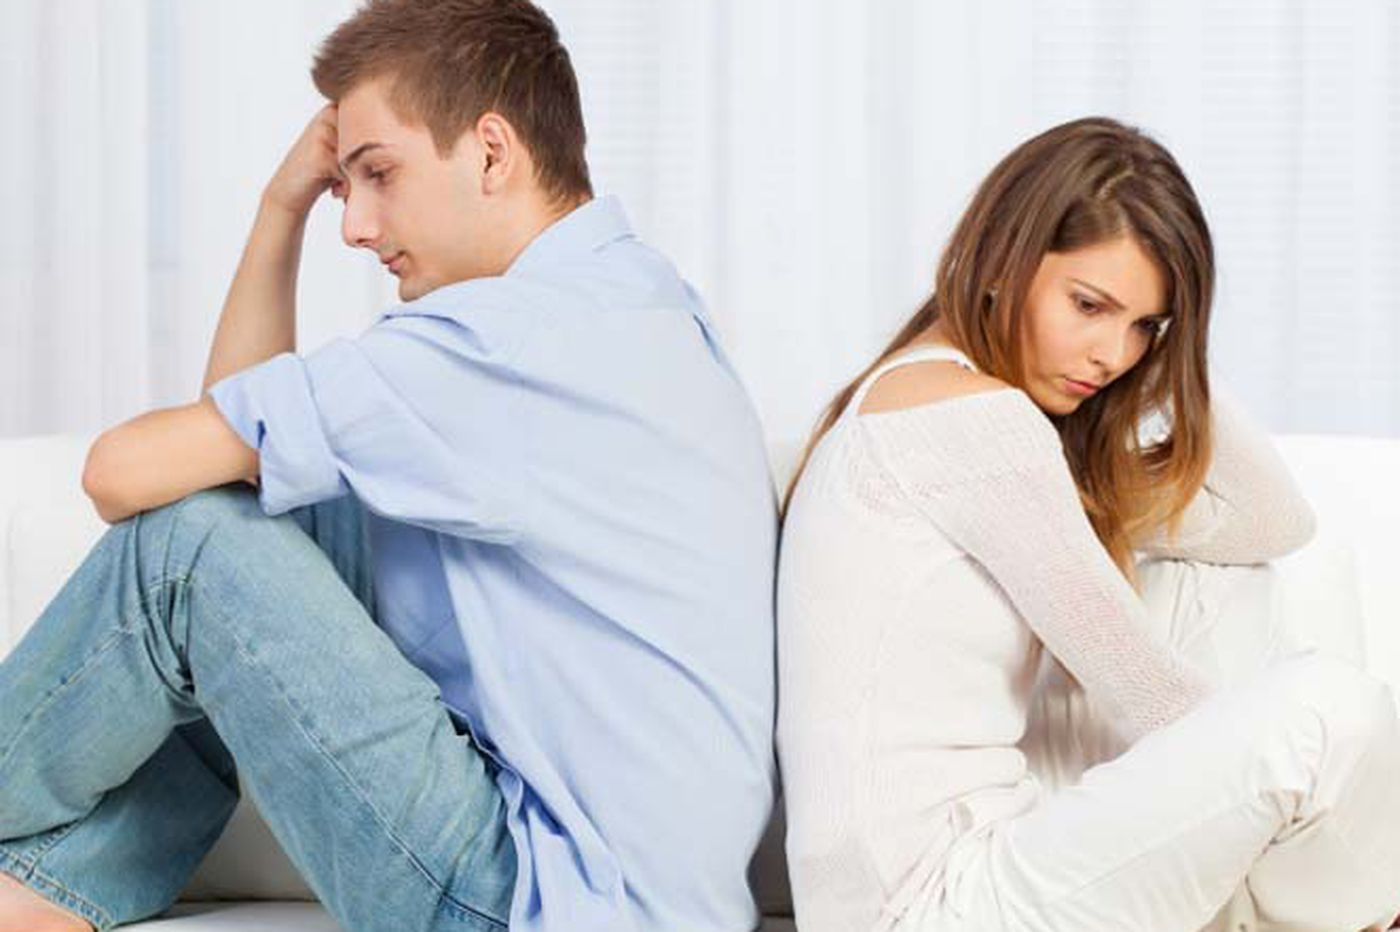 Steve and Mia: Is it OK to break up over the holidays?